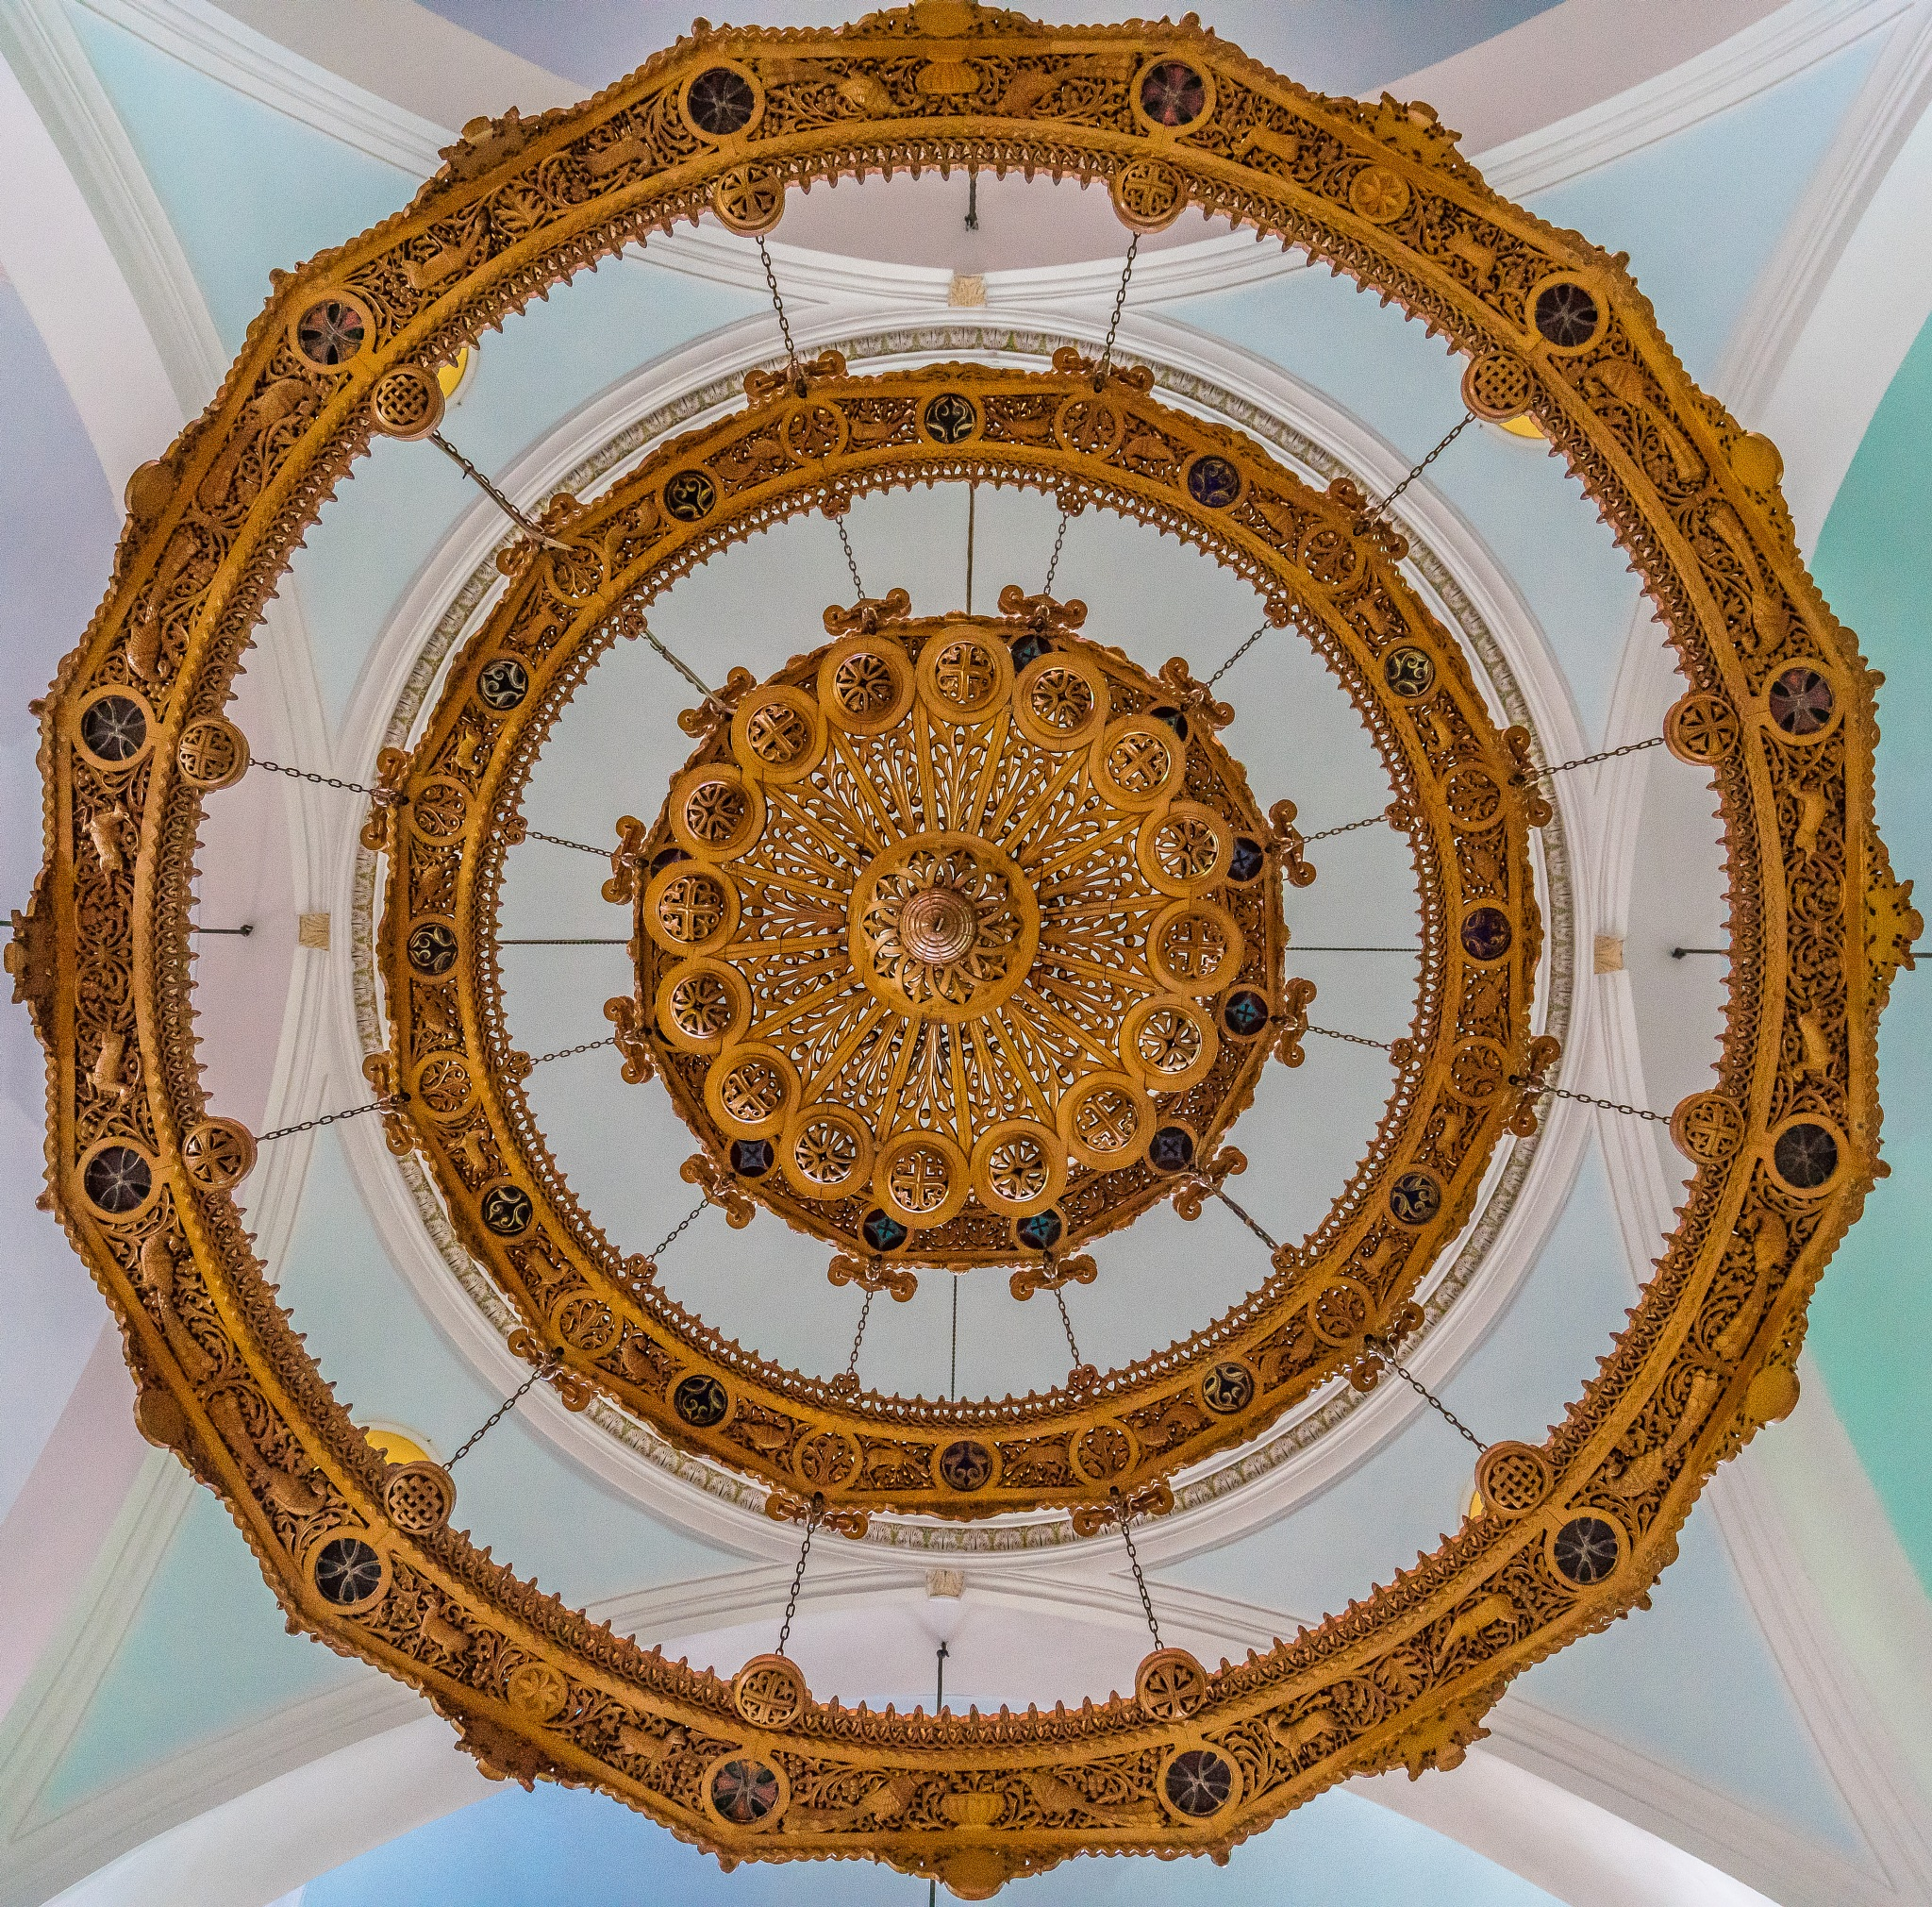 Ceiling lamp by BernArt Photography